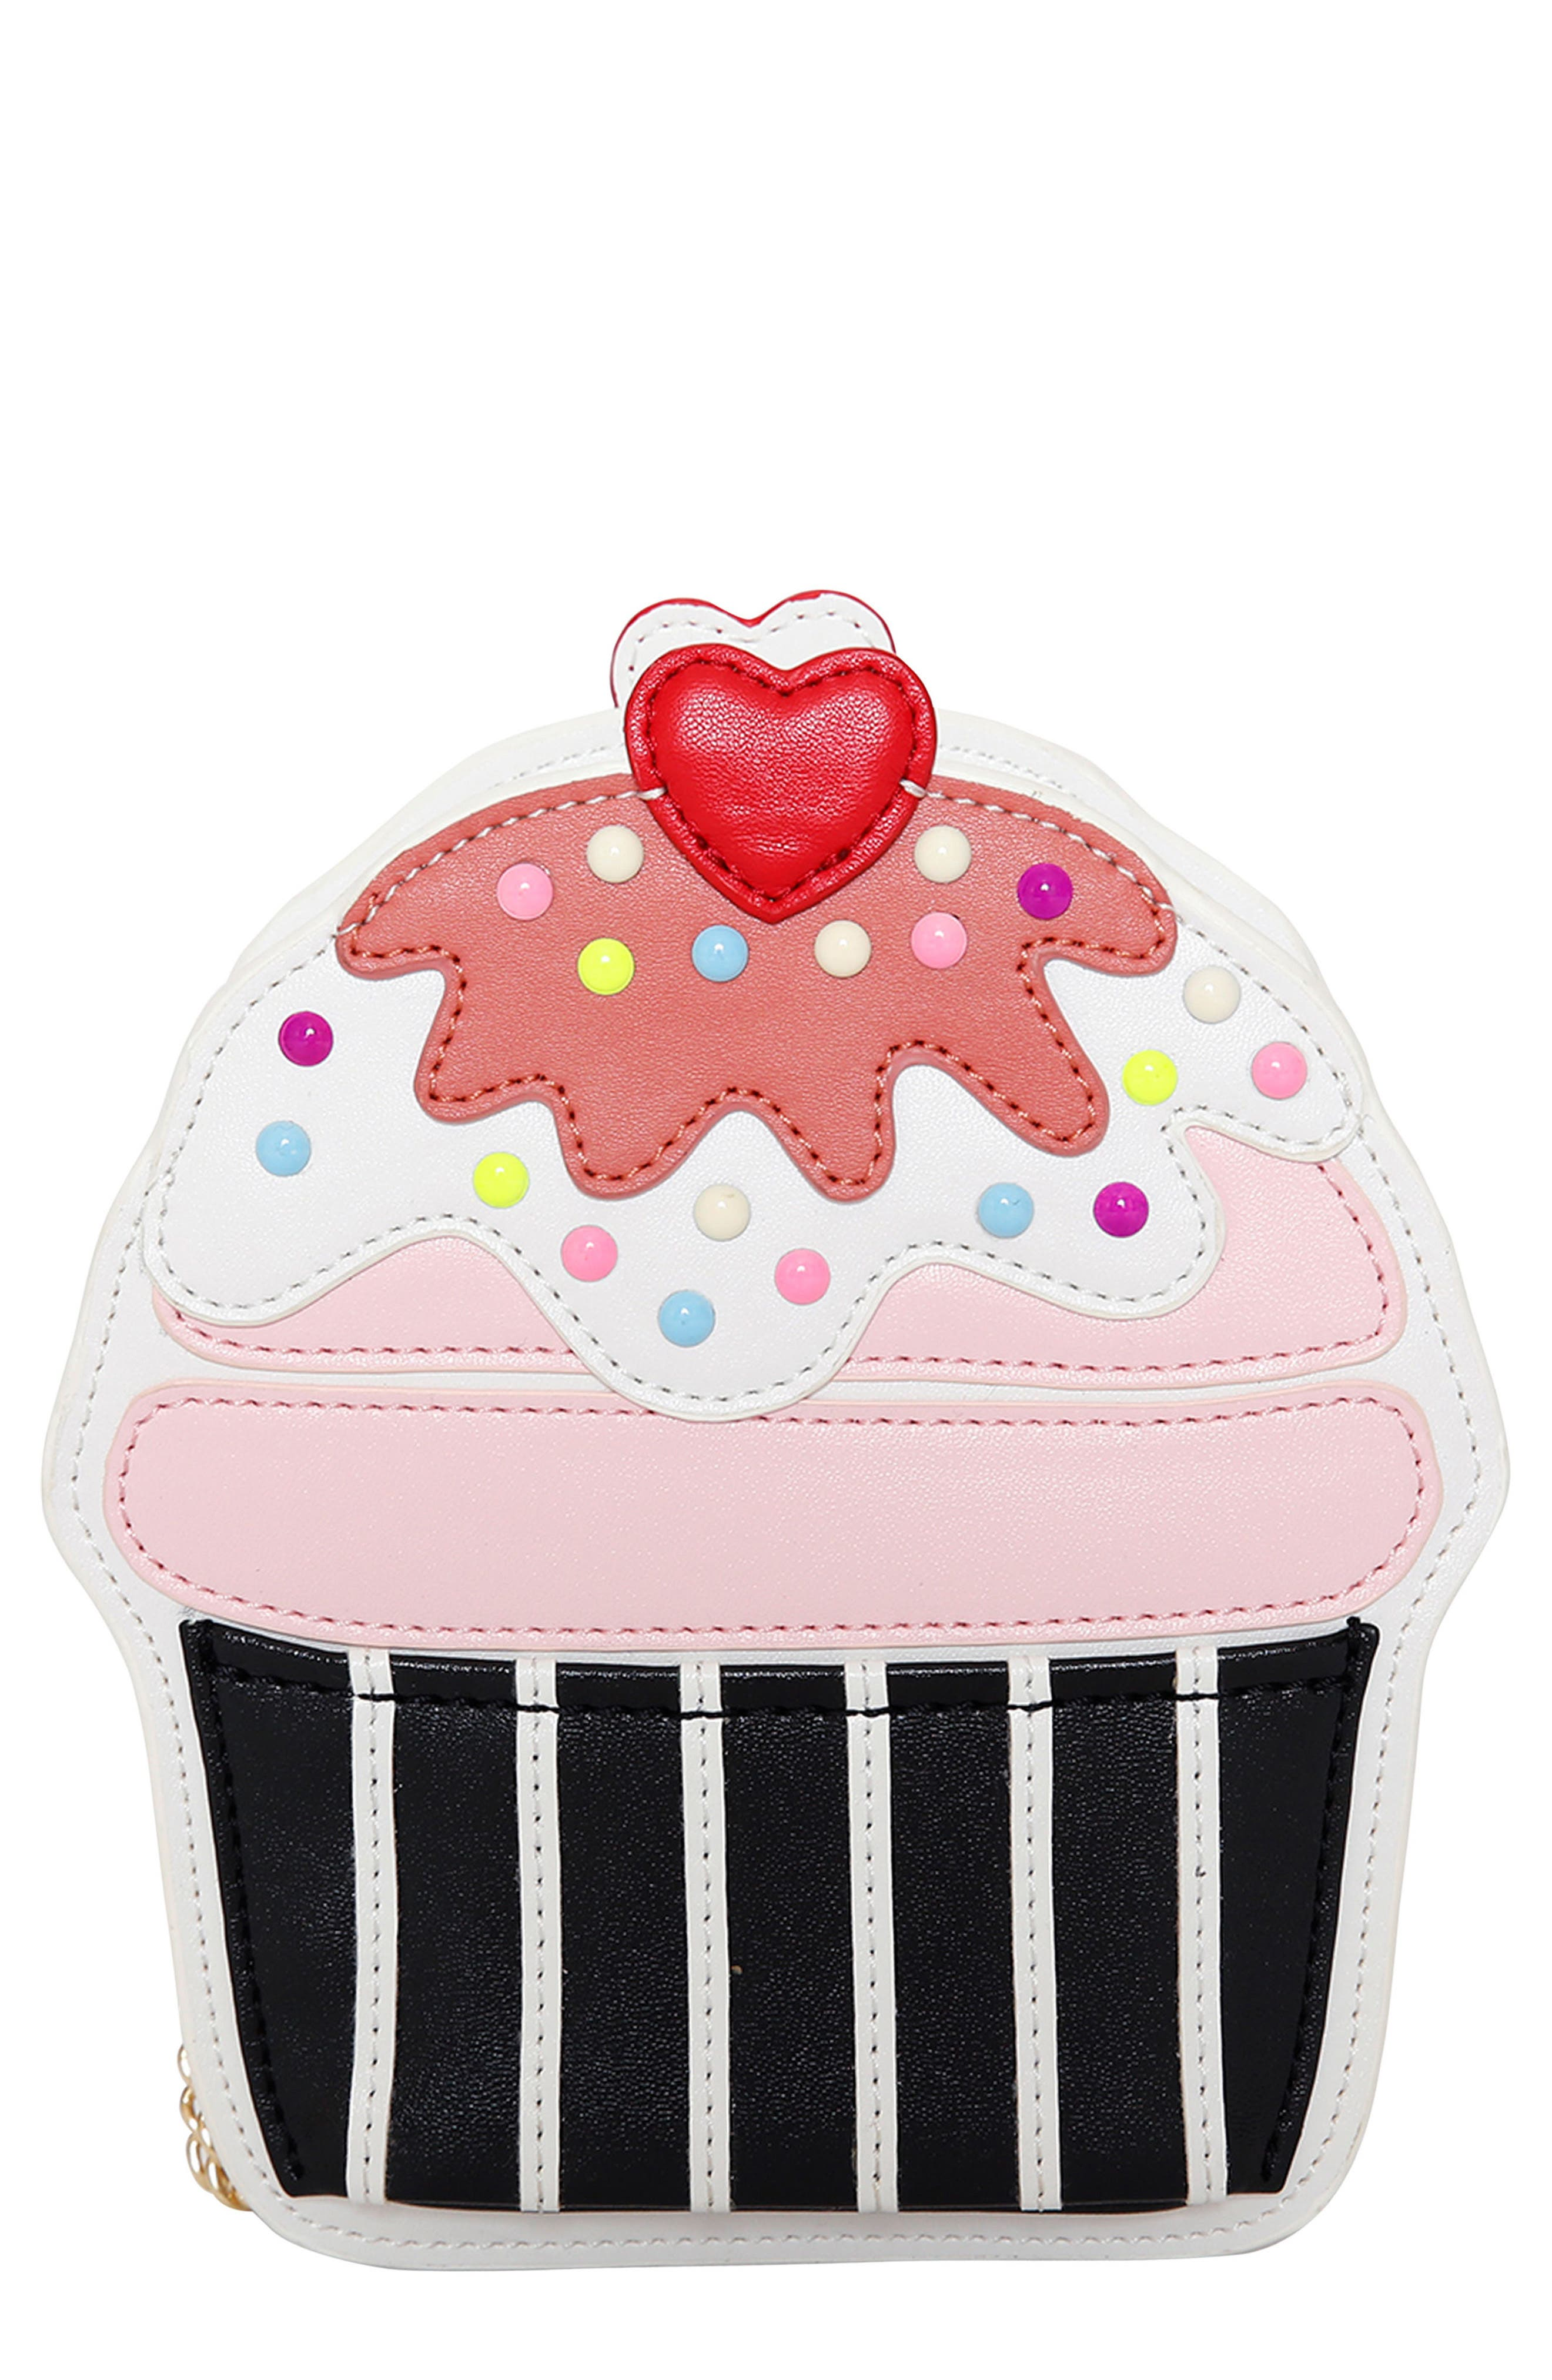 Cupcake Crossbody Bag,                         Main,                         color, White Multi